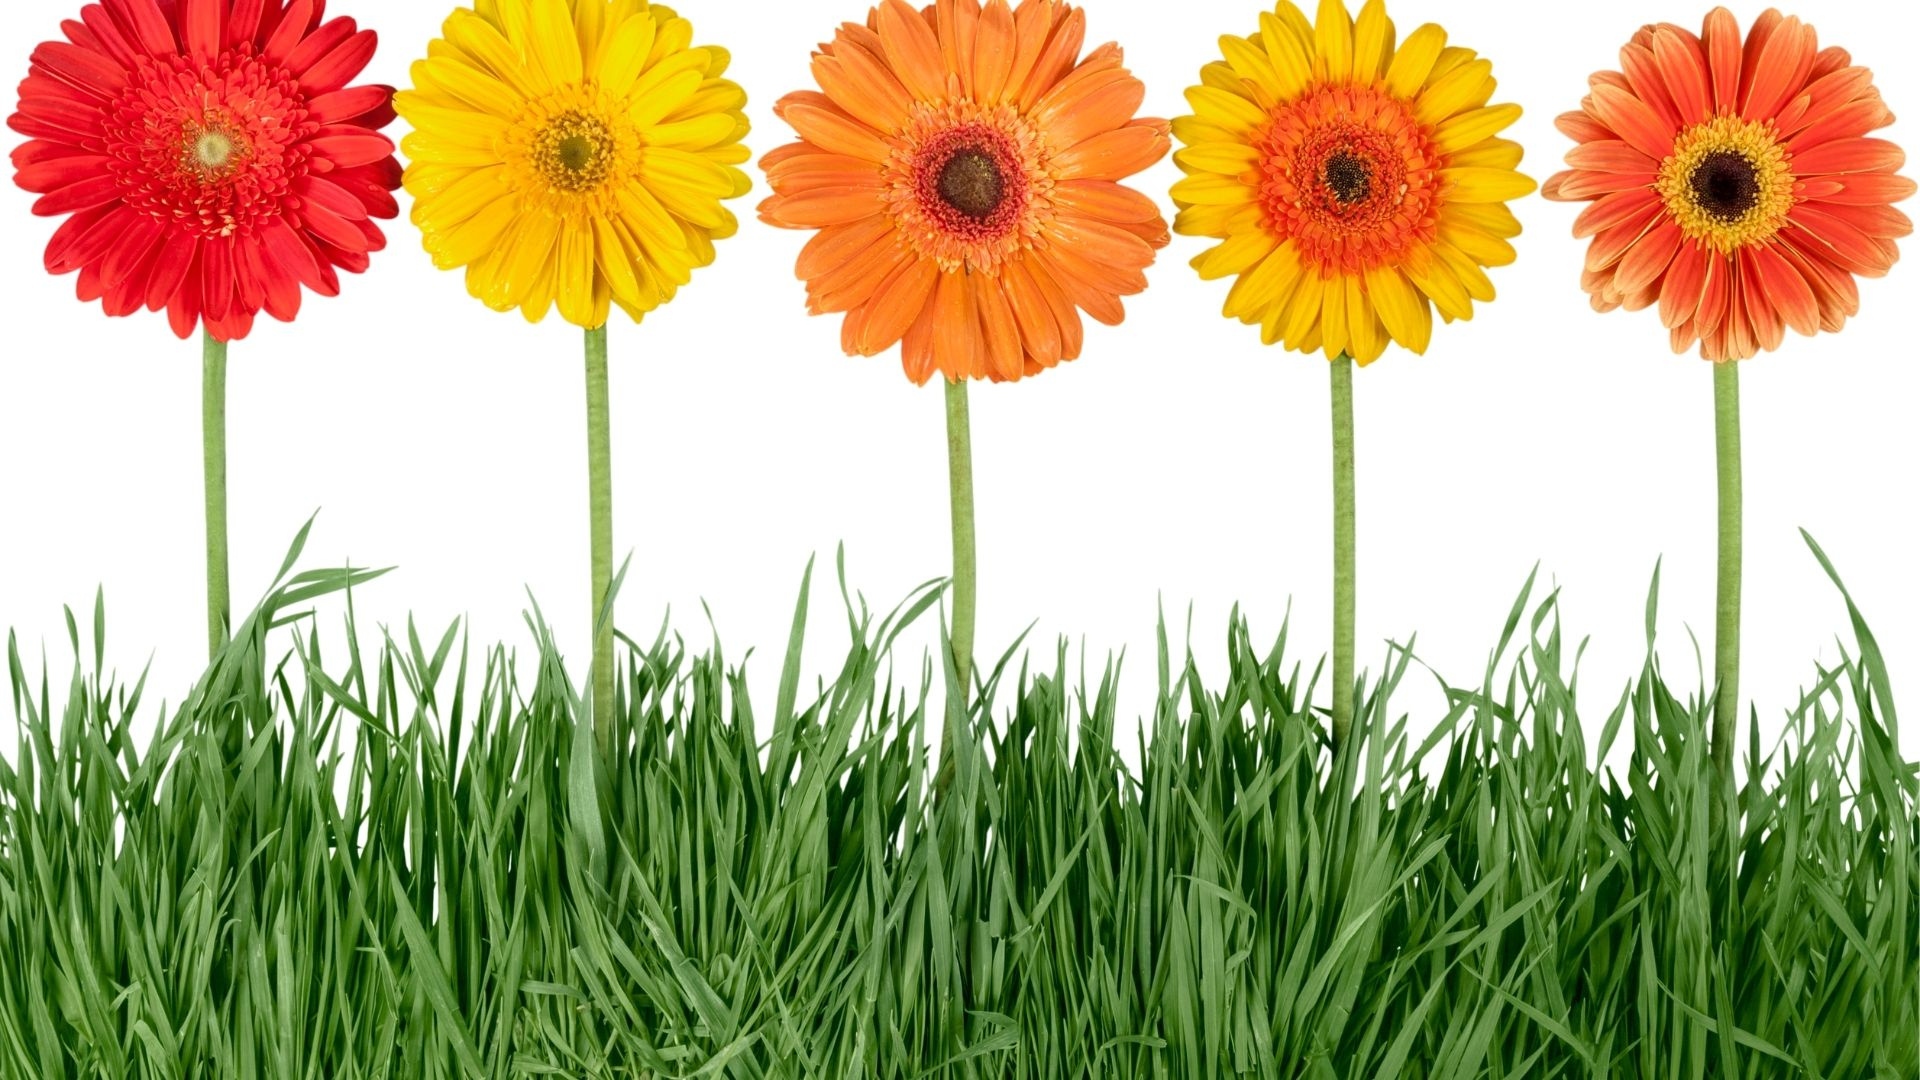 Gerbera Daisy with orange, yellow, red flowers or a mixture of varying colors.